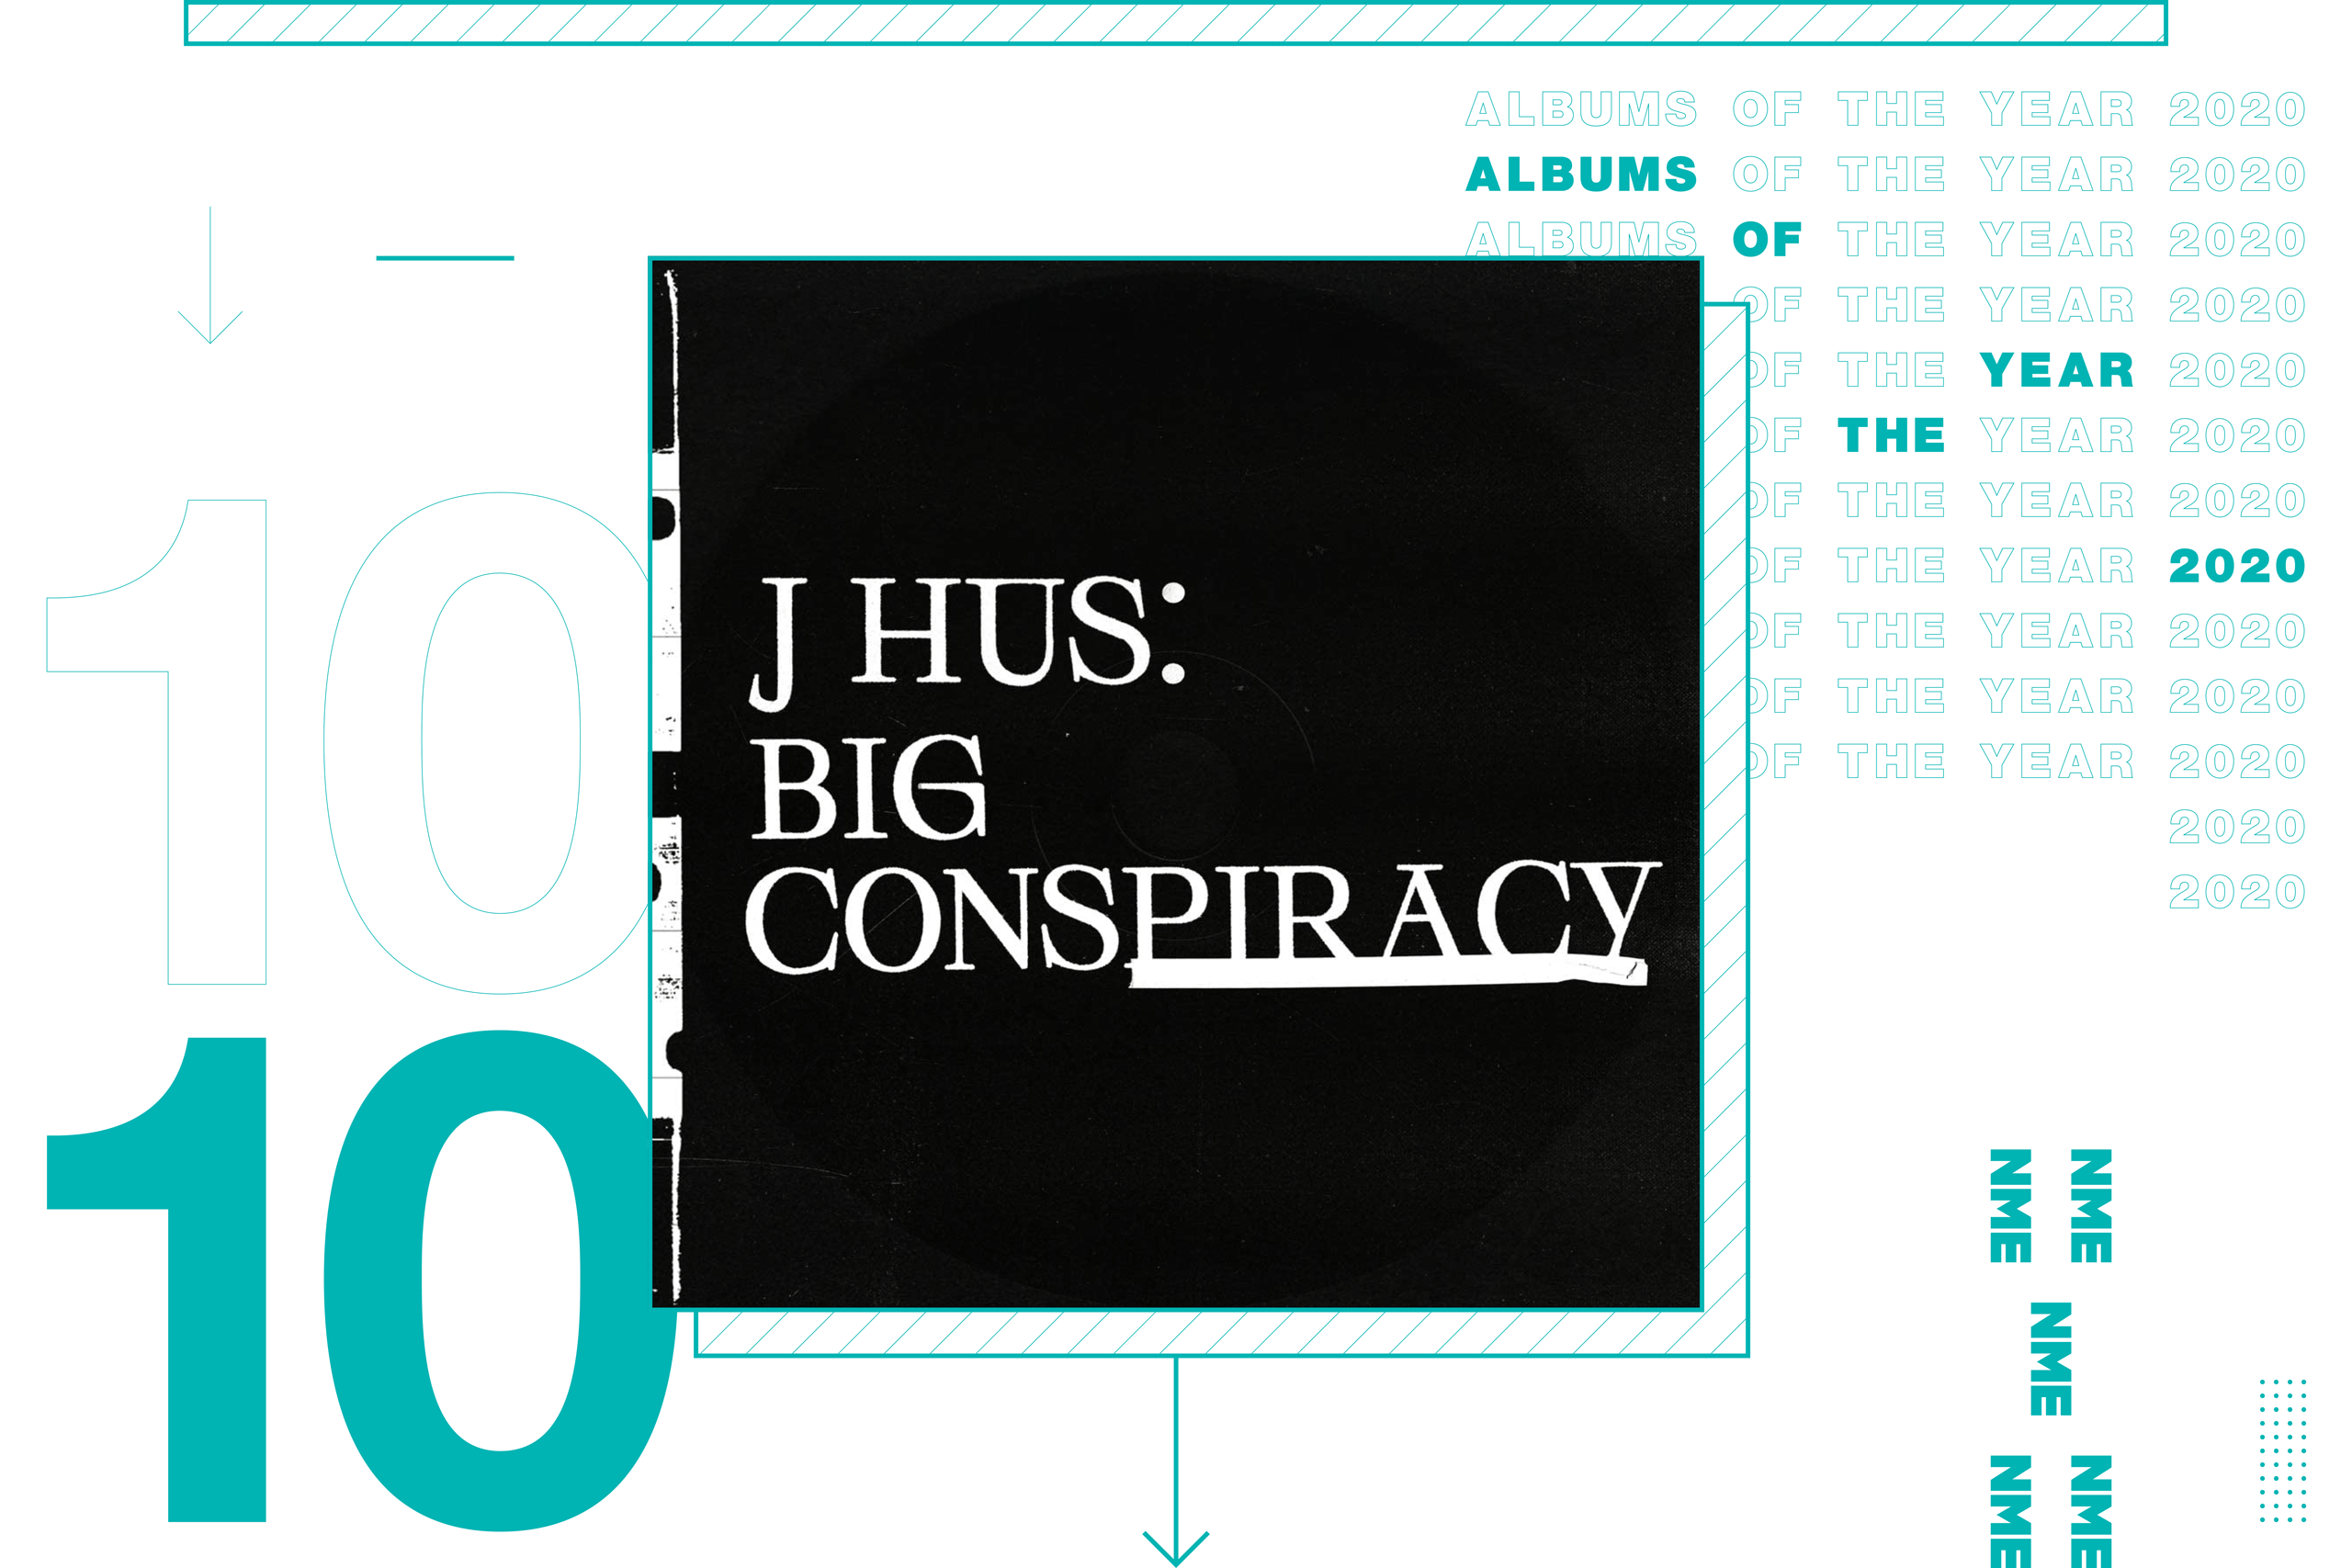 NME Album Of The Year 2020 J Hus, 'Big Conspiracy'